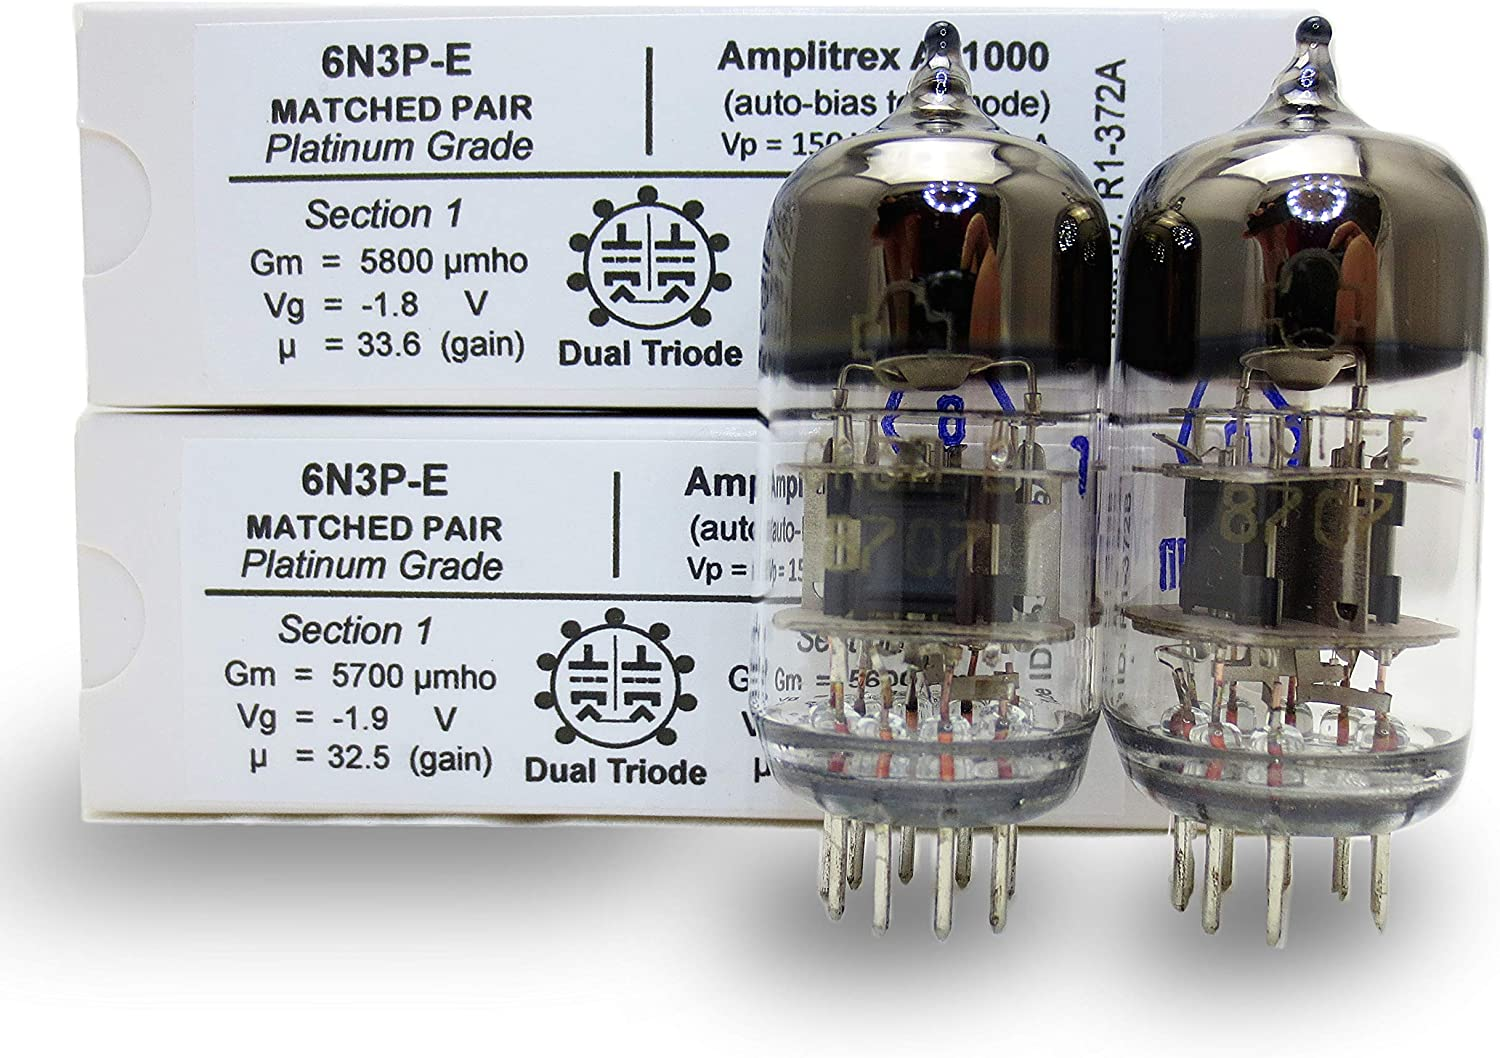 Platinum Grade Pair Riverstone Audio 6N3P-E Amplitrex Tested//Matched - Vintage NOS Russian Vacuum Tubes Replacement for 6N3 // 6N3P // 5670 // 5670W // 396A // 2C51 6N3P-E Matched Pair 2 tubes